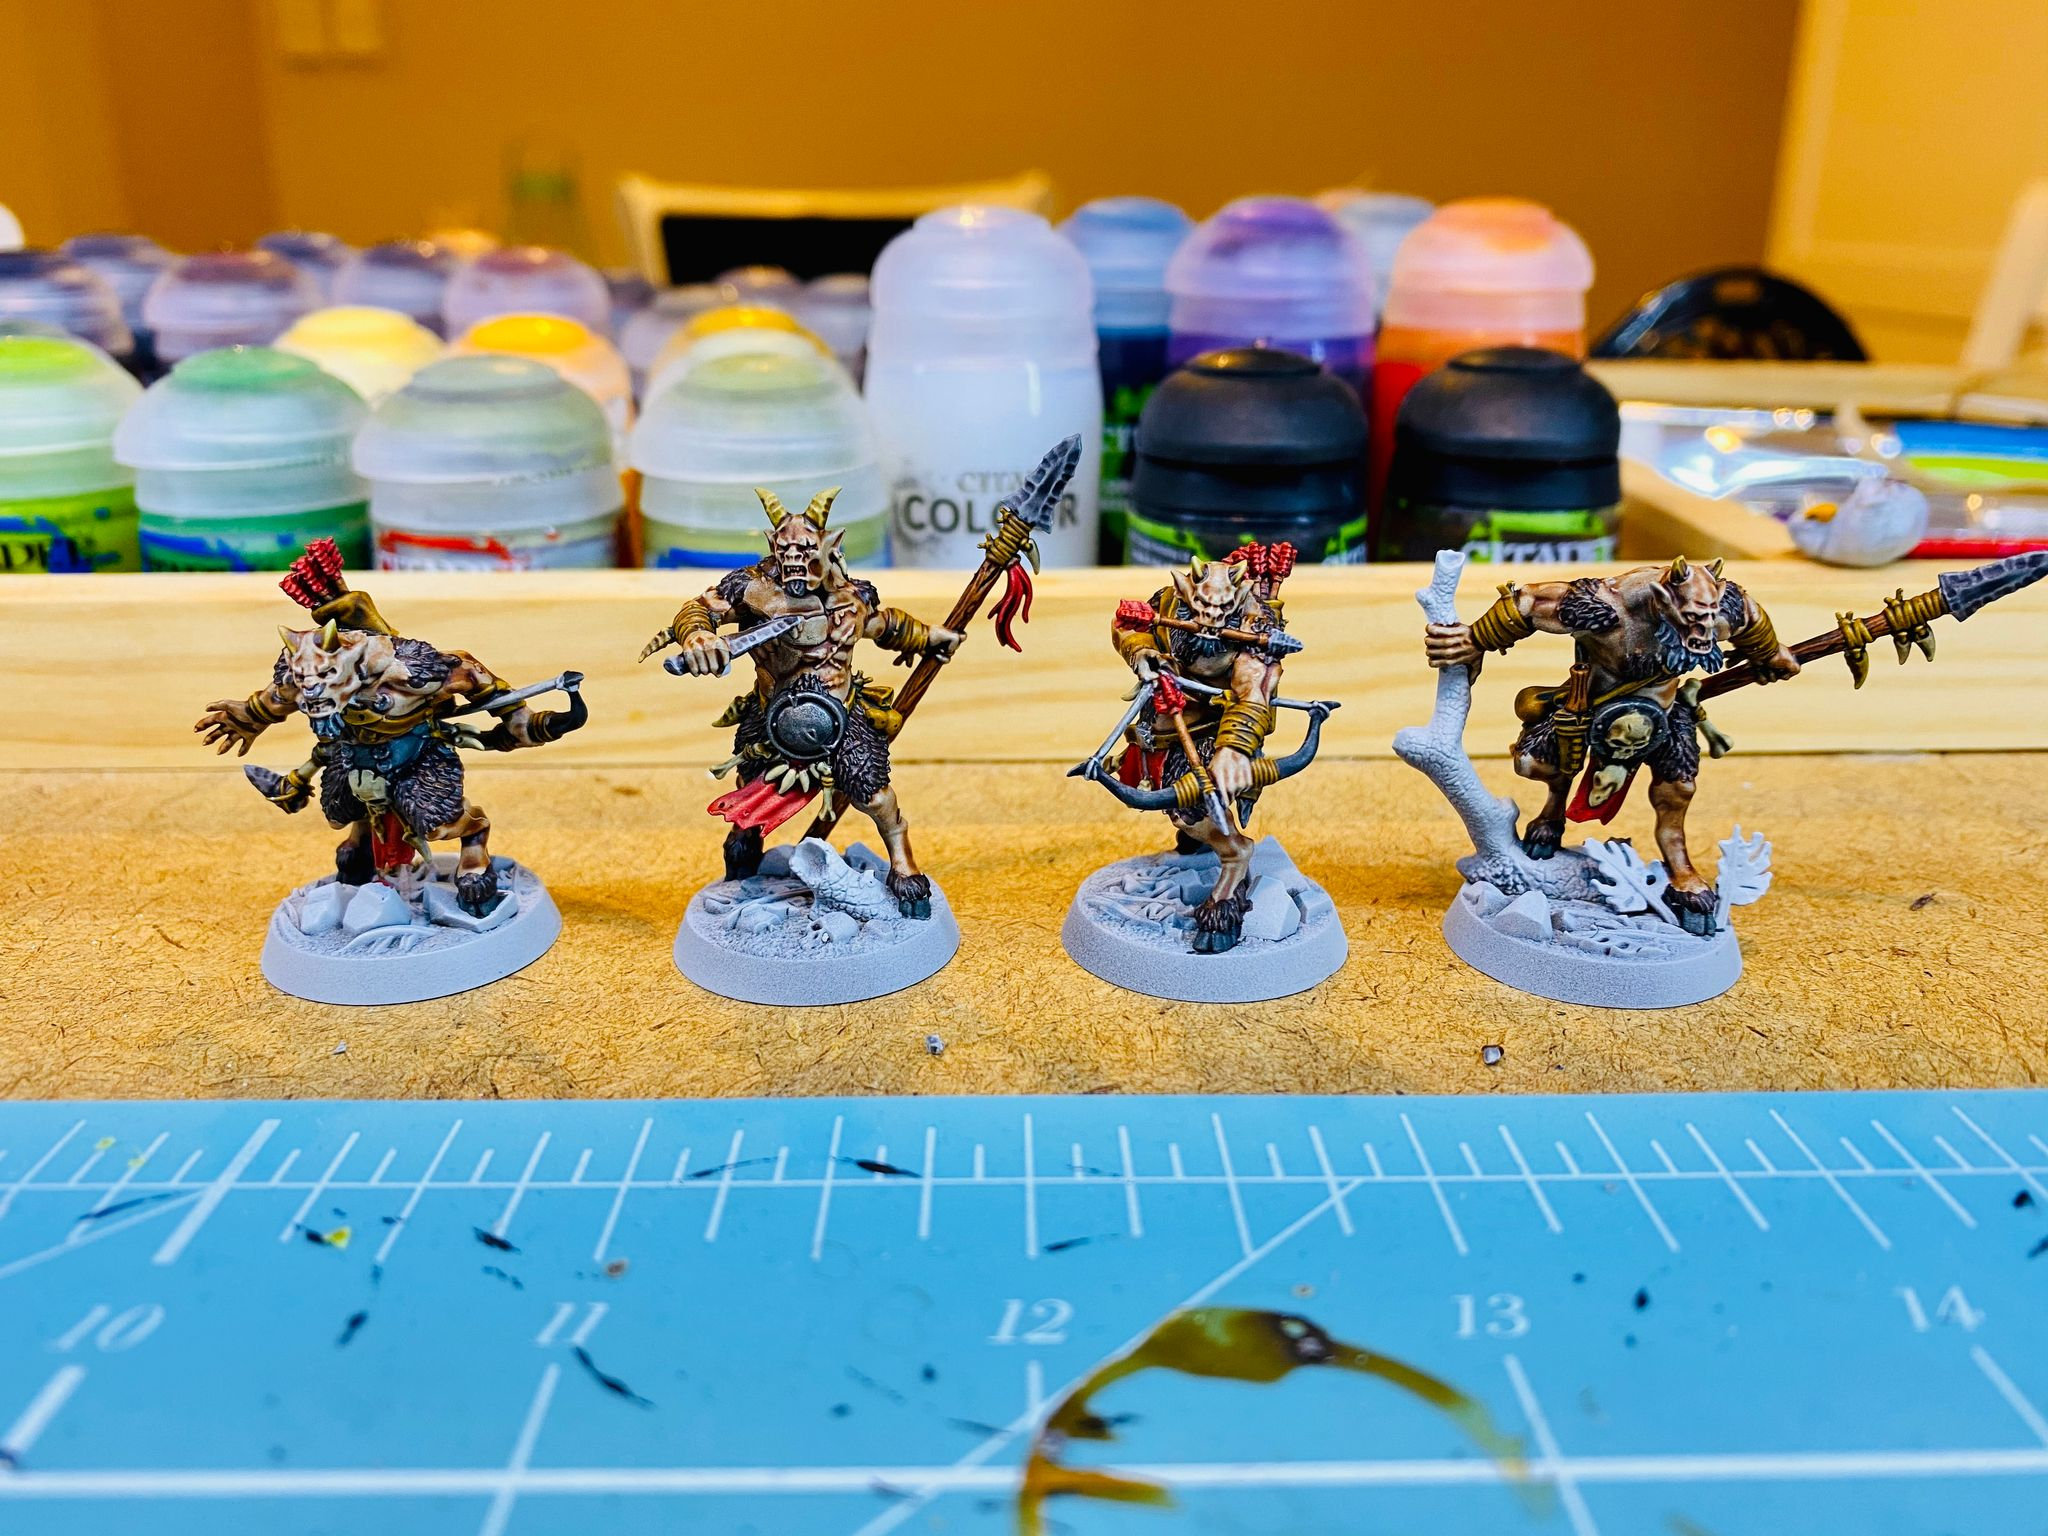 A photo of four goatmen miniatures in various poses.